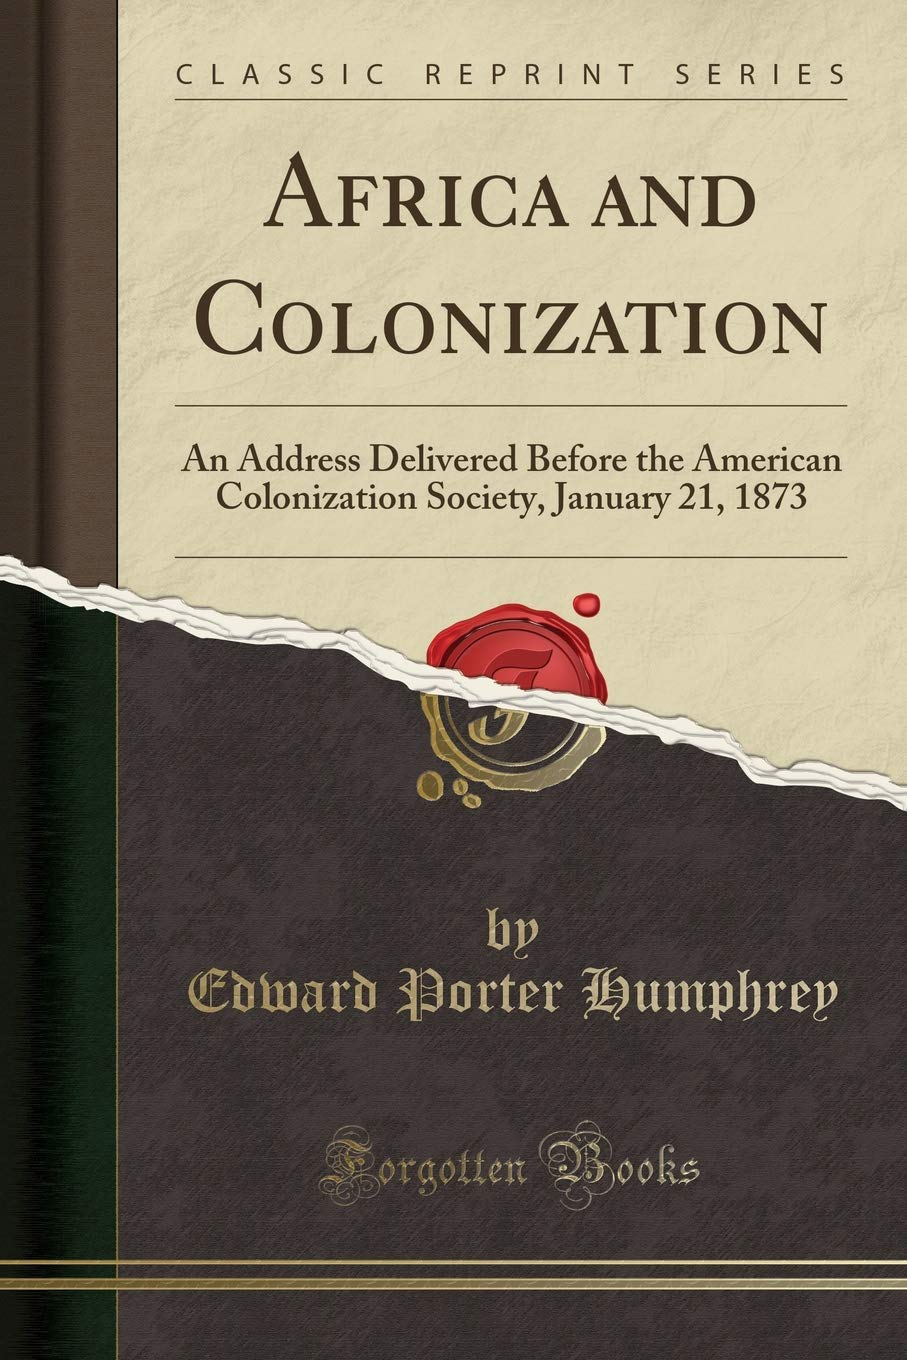 Africa and Colonization: An Address Delivered Before the American Colonization Society, January 21, 1873 (Classic Reprint) ebook